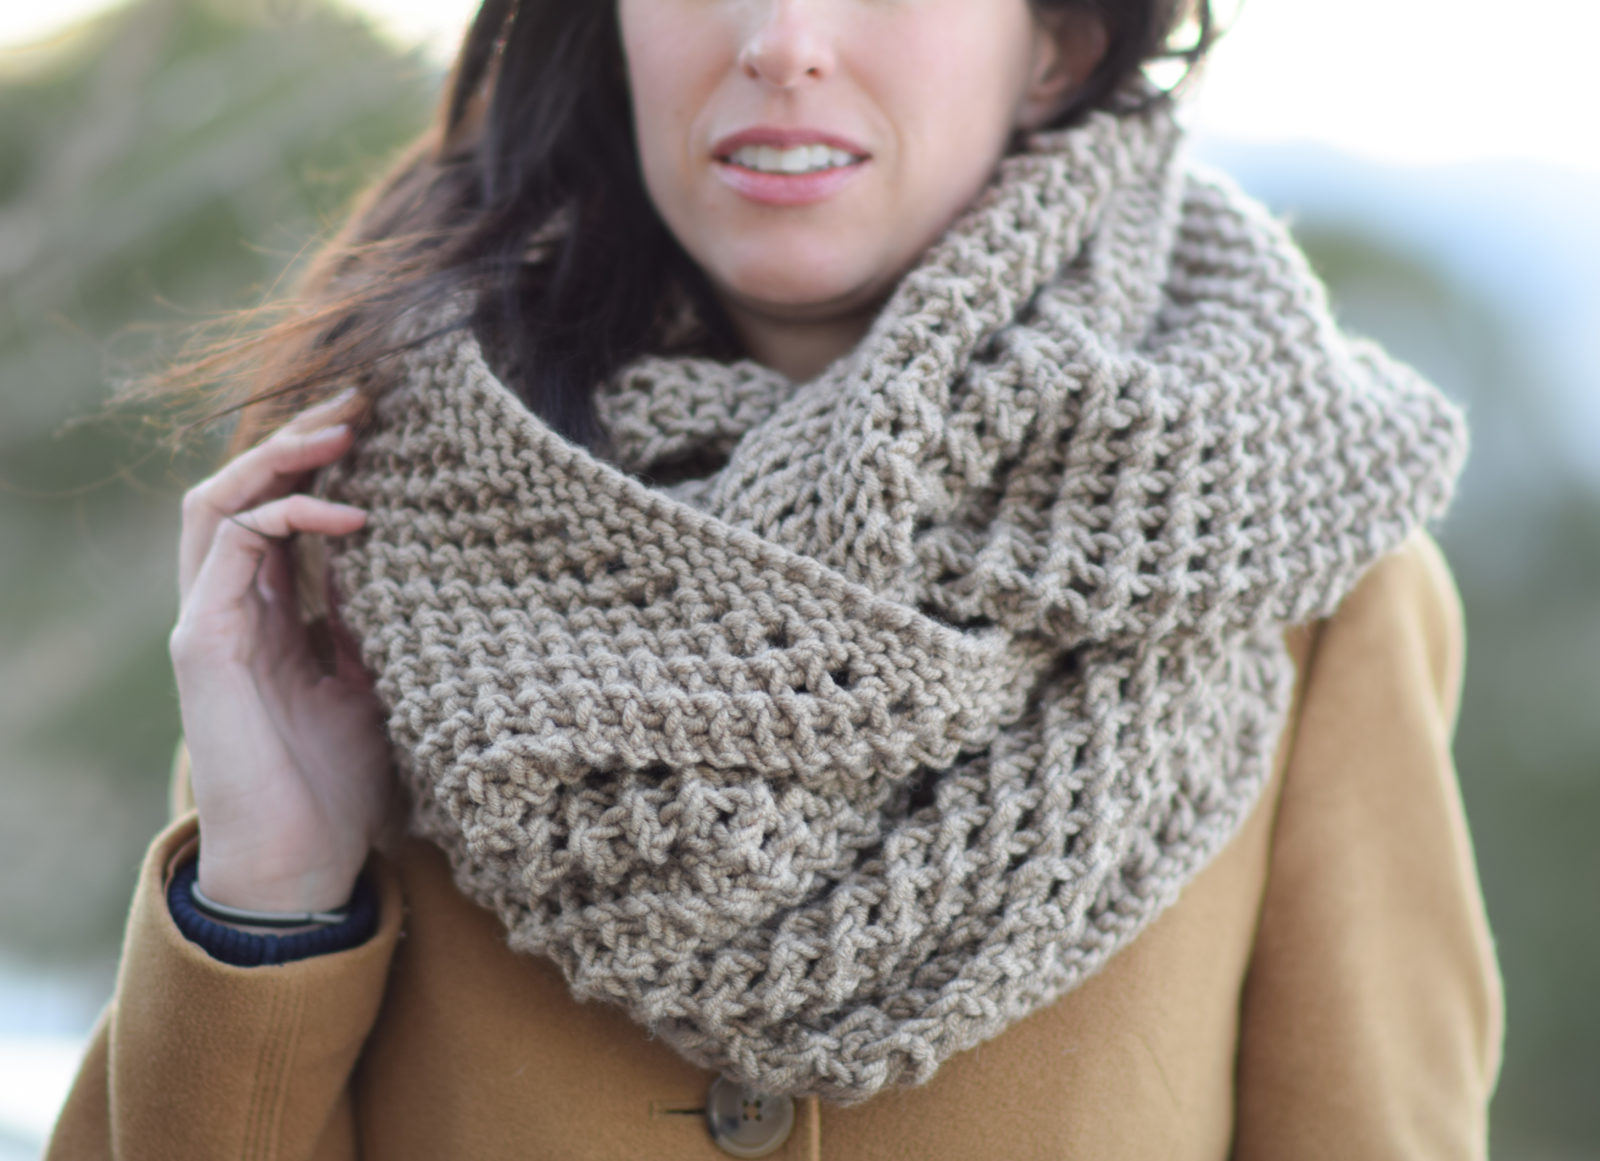 Knitting Patterns For Scarves On Pinterest : The Traveler Knit Infinicowl Scarf Pattern   Mama In A Stitch